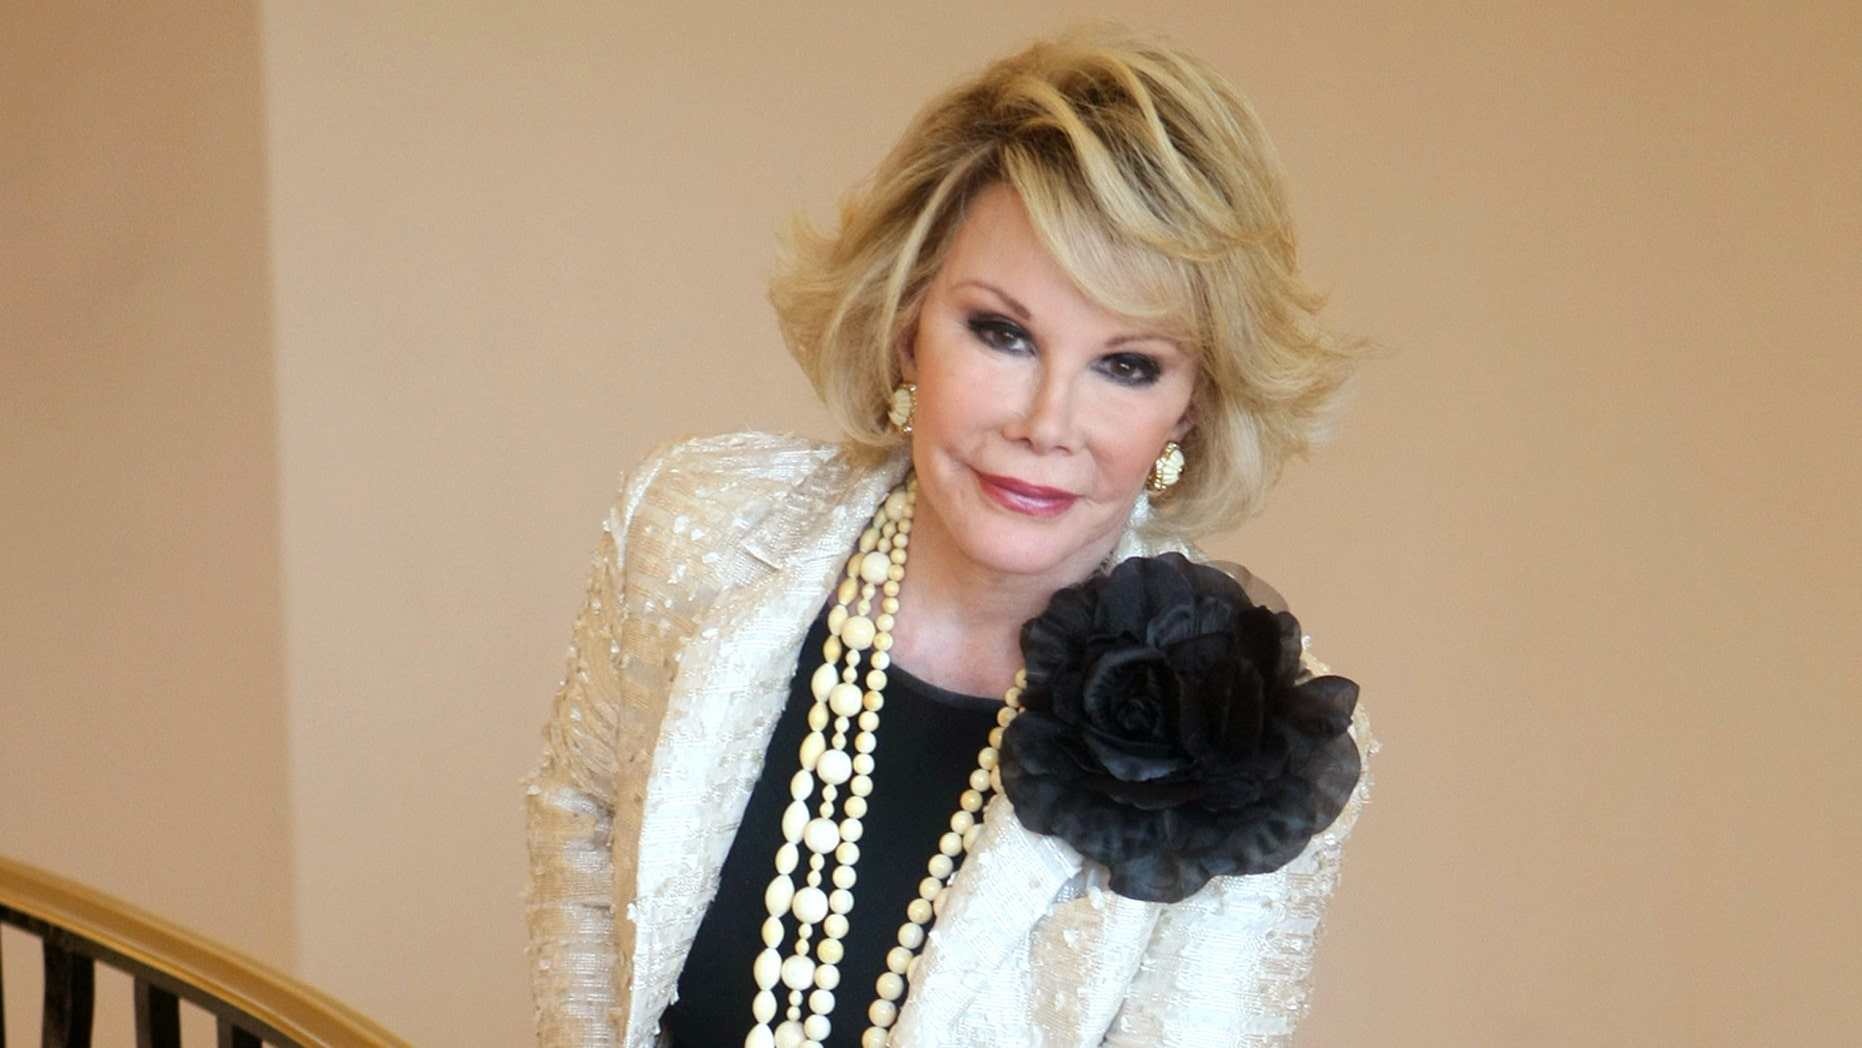 """Oct. 5, 2009. Joan Rivers posing as she presents """"Comedy Roast with Joan Rivers """" in Cannes."""